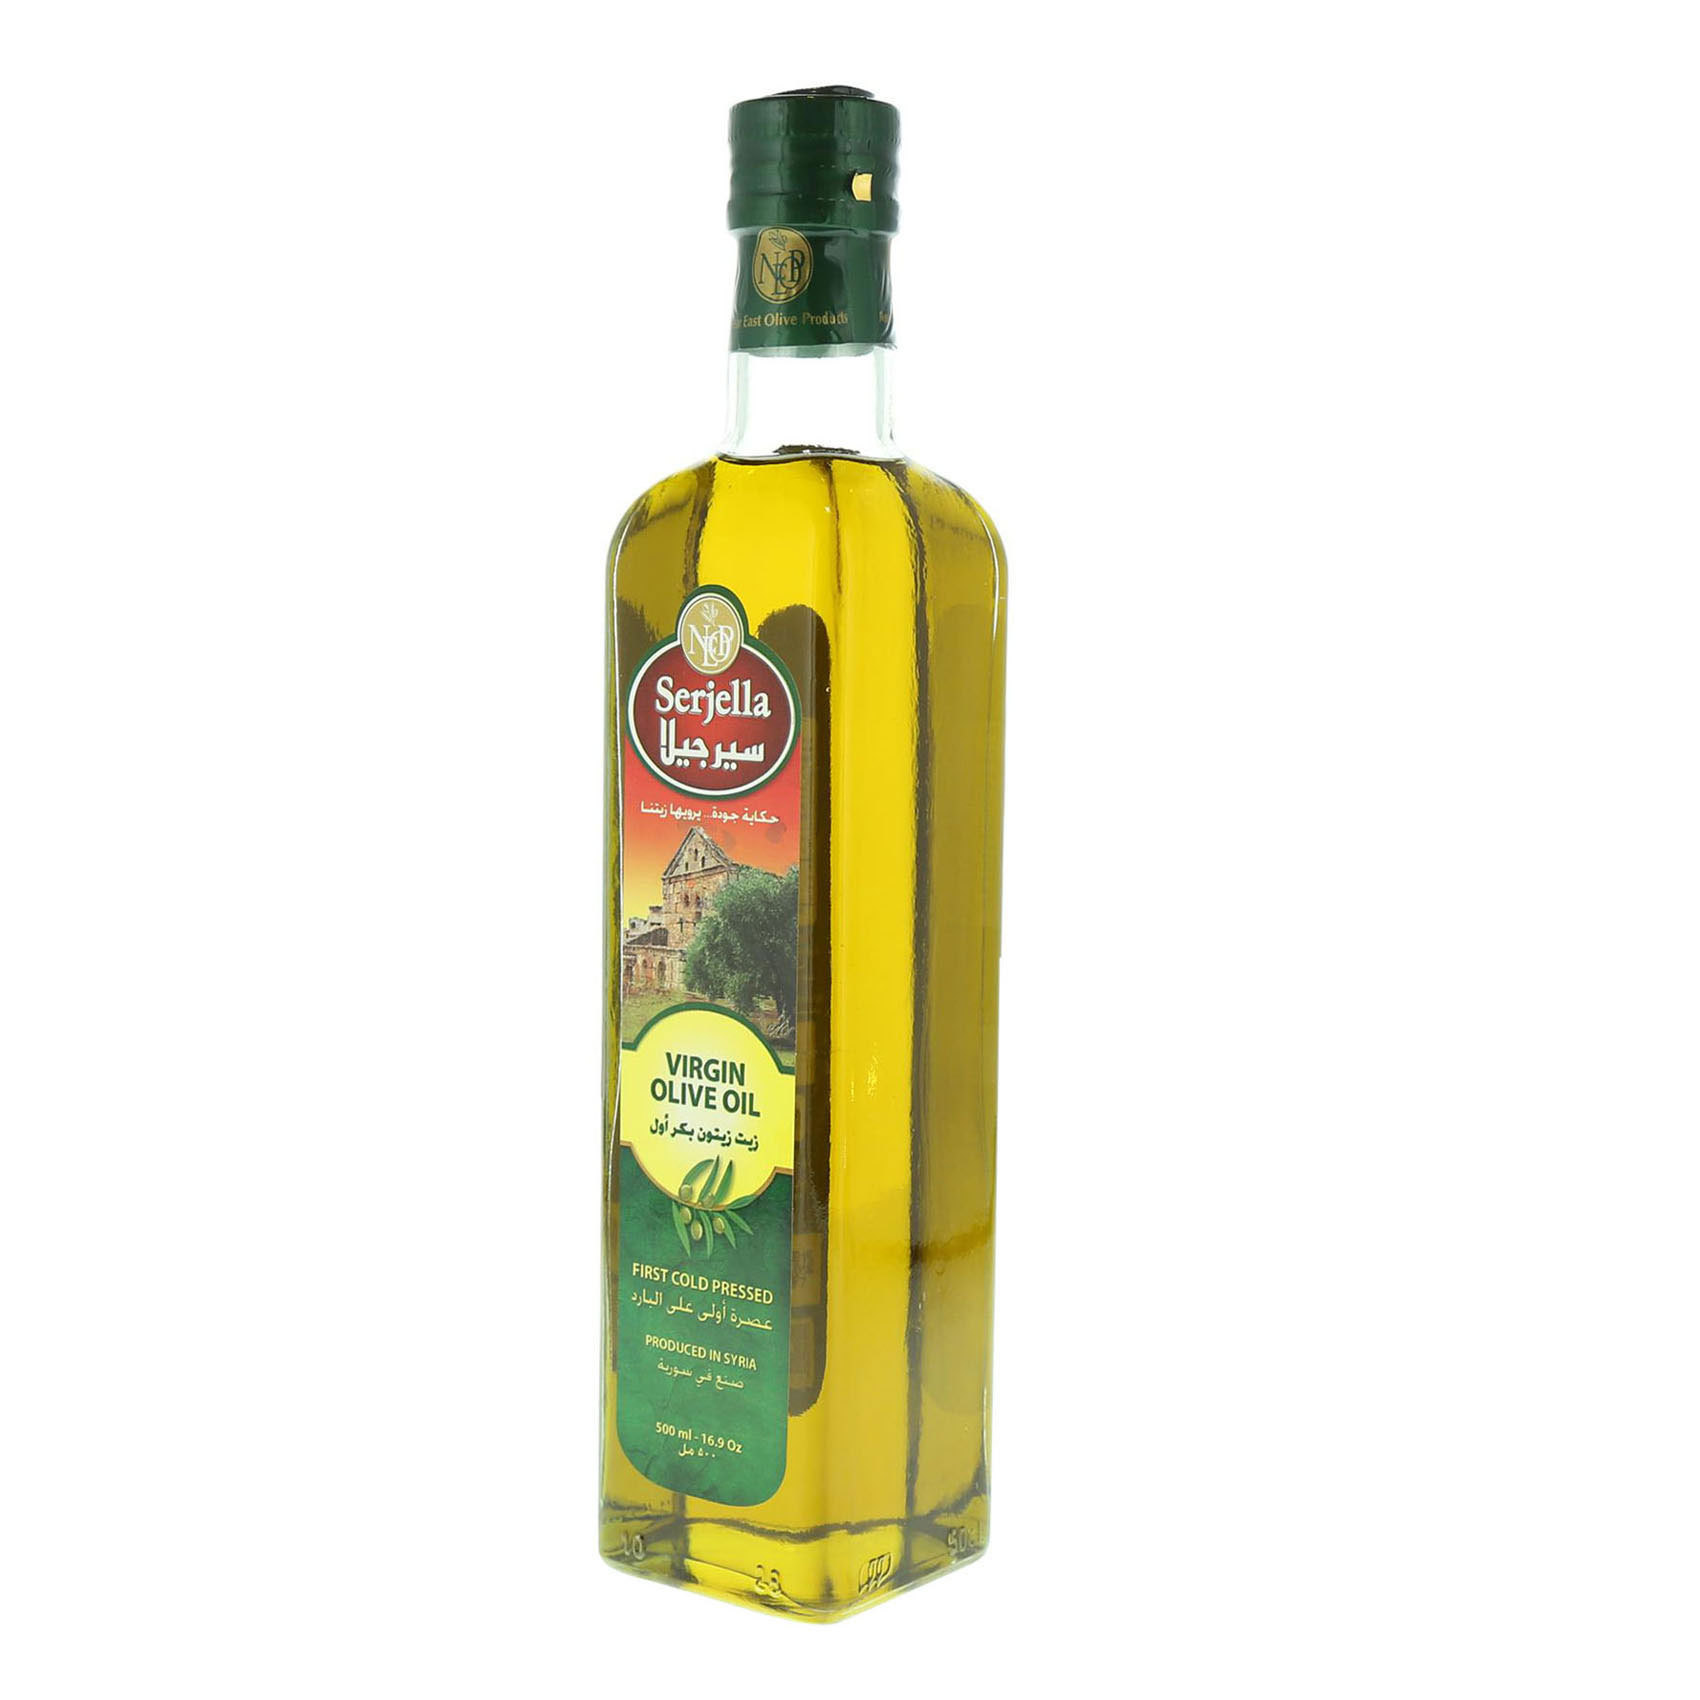 SERJELLA VIRGIN OLIVE OIL 500ML